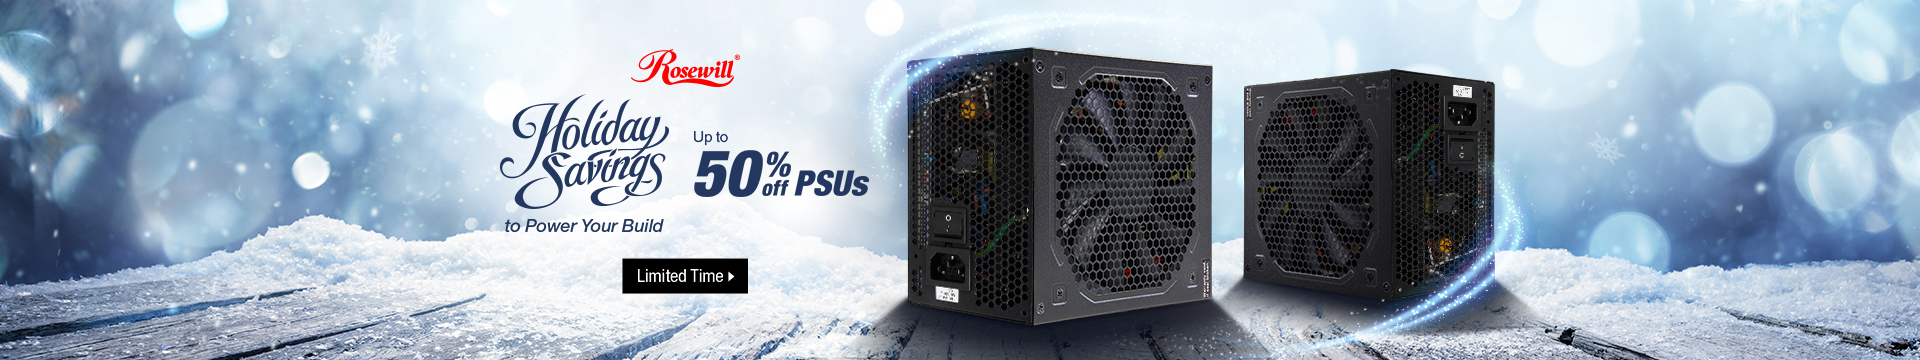 Holiday Savings to Power Your Build